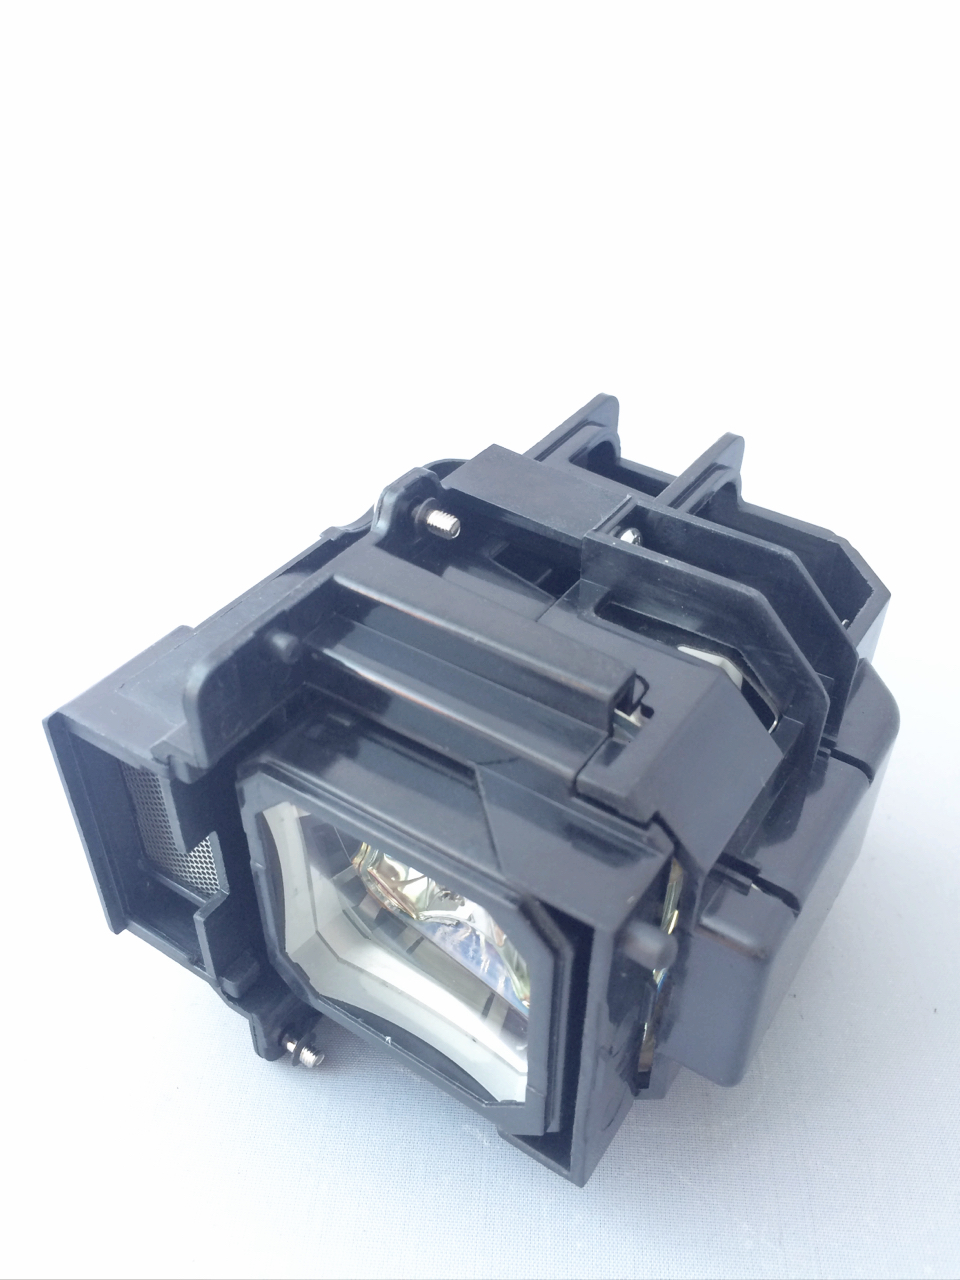 SHENG Projector Lamp VT75LP for NEC LT280 / LT375 / LT380 / LT380G / VT470 / VT670 / VT675 / VT676 / LT280G / VT670G / VT676G vt75lp vt 75lp for nec lt280 lt380 lt380g vt470 vt670 vt676 lt375 vt675 projector bulbs lamp with housing